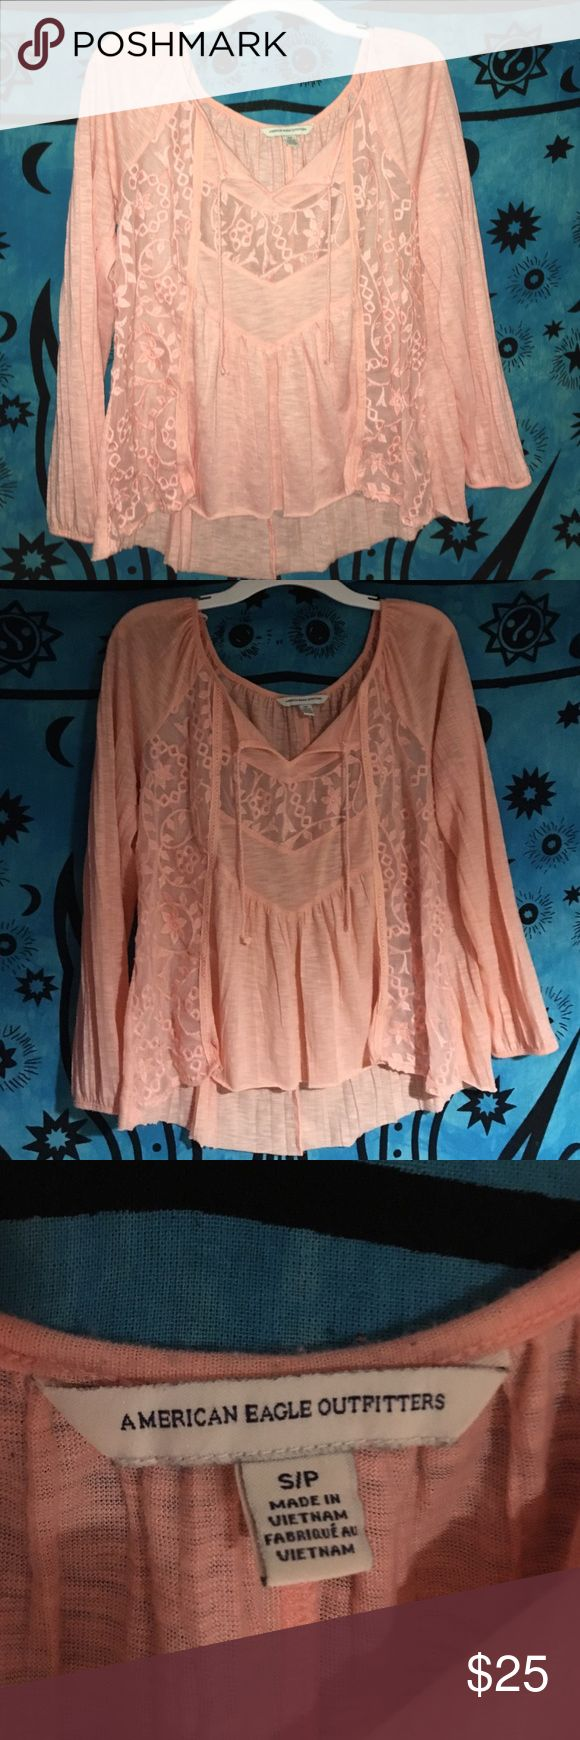 American Eagle shirt Worn once light pink loose flowey shirt with see threw sides American Eagle Outfitters Tops Blouses